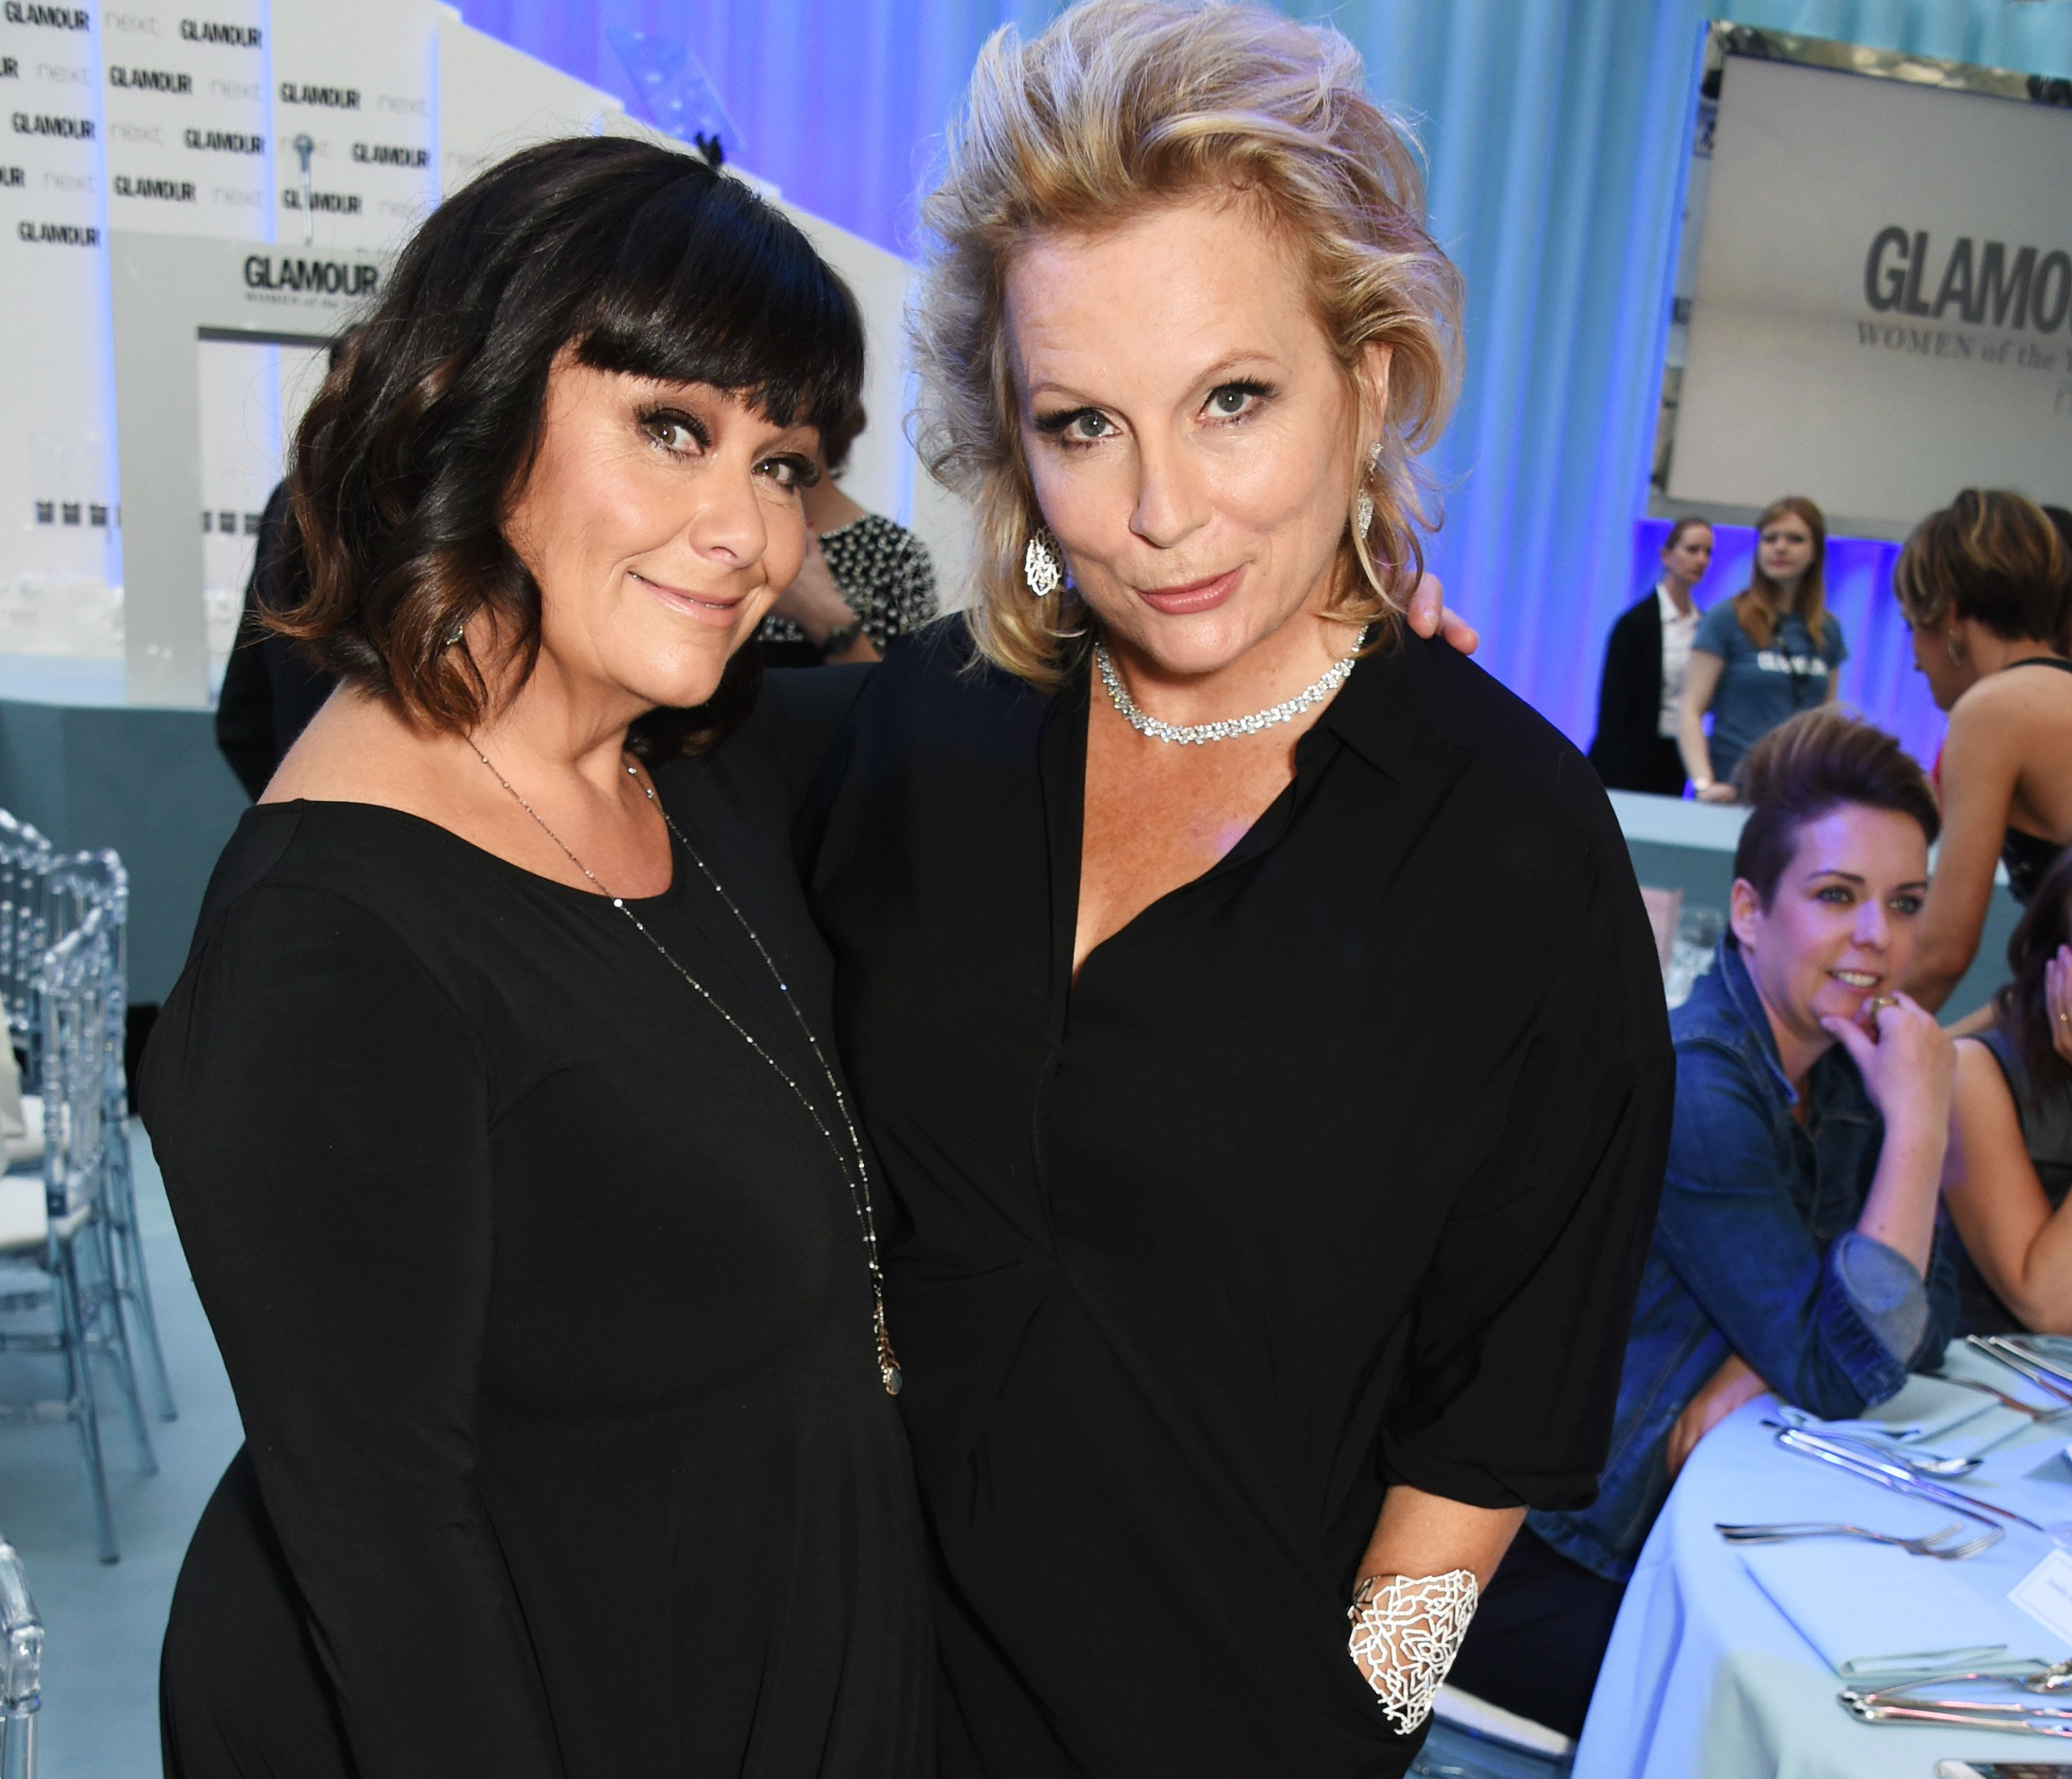 French And Saunders Speak Out On 'Bake Off' Presenting